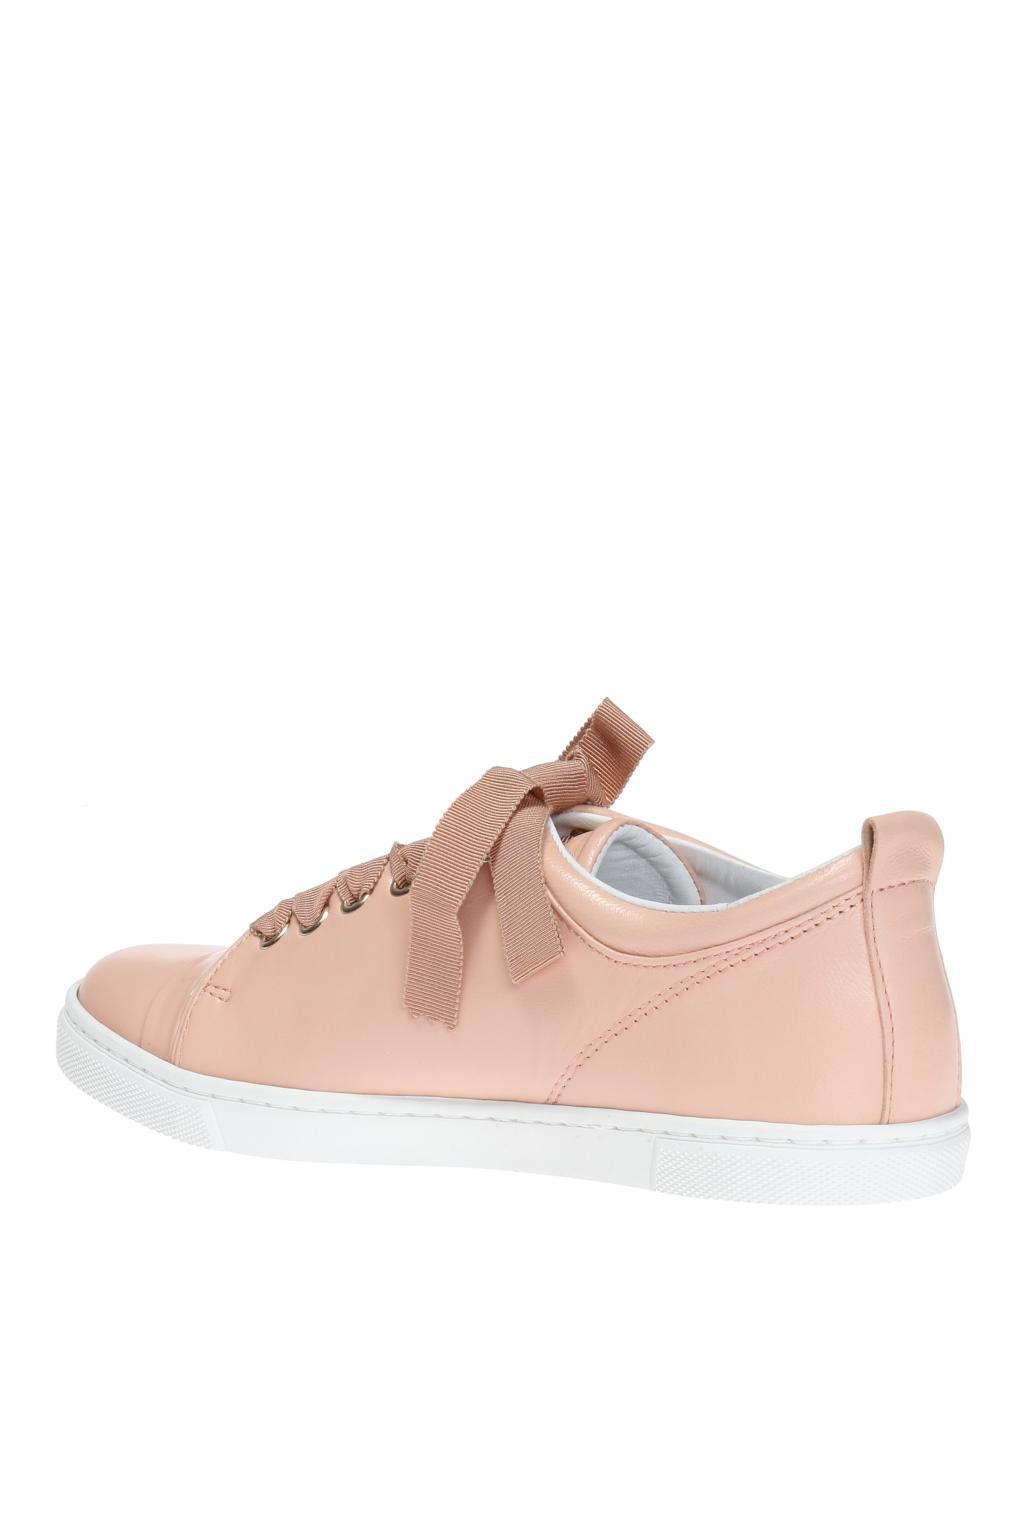 Lanvin Leather Lace-up Sneakers in Pink